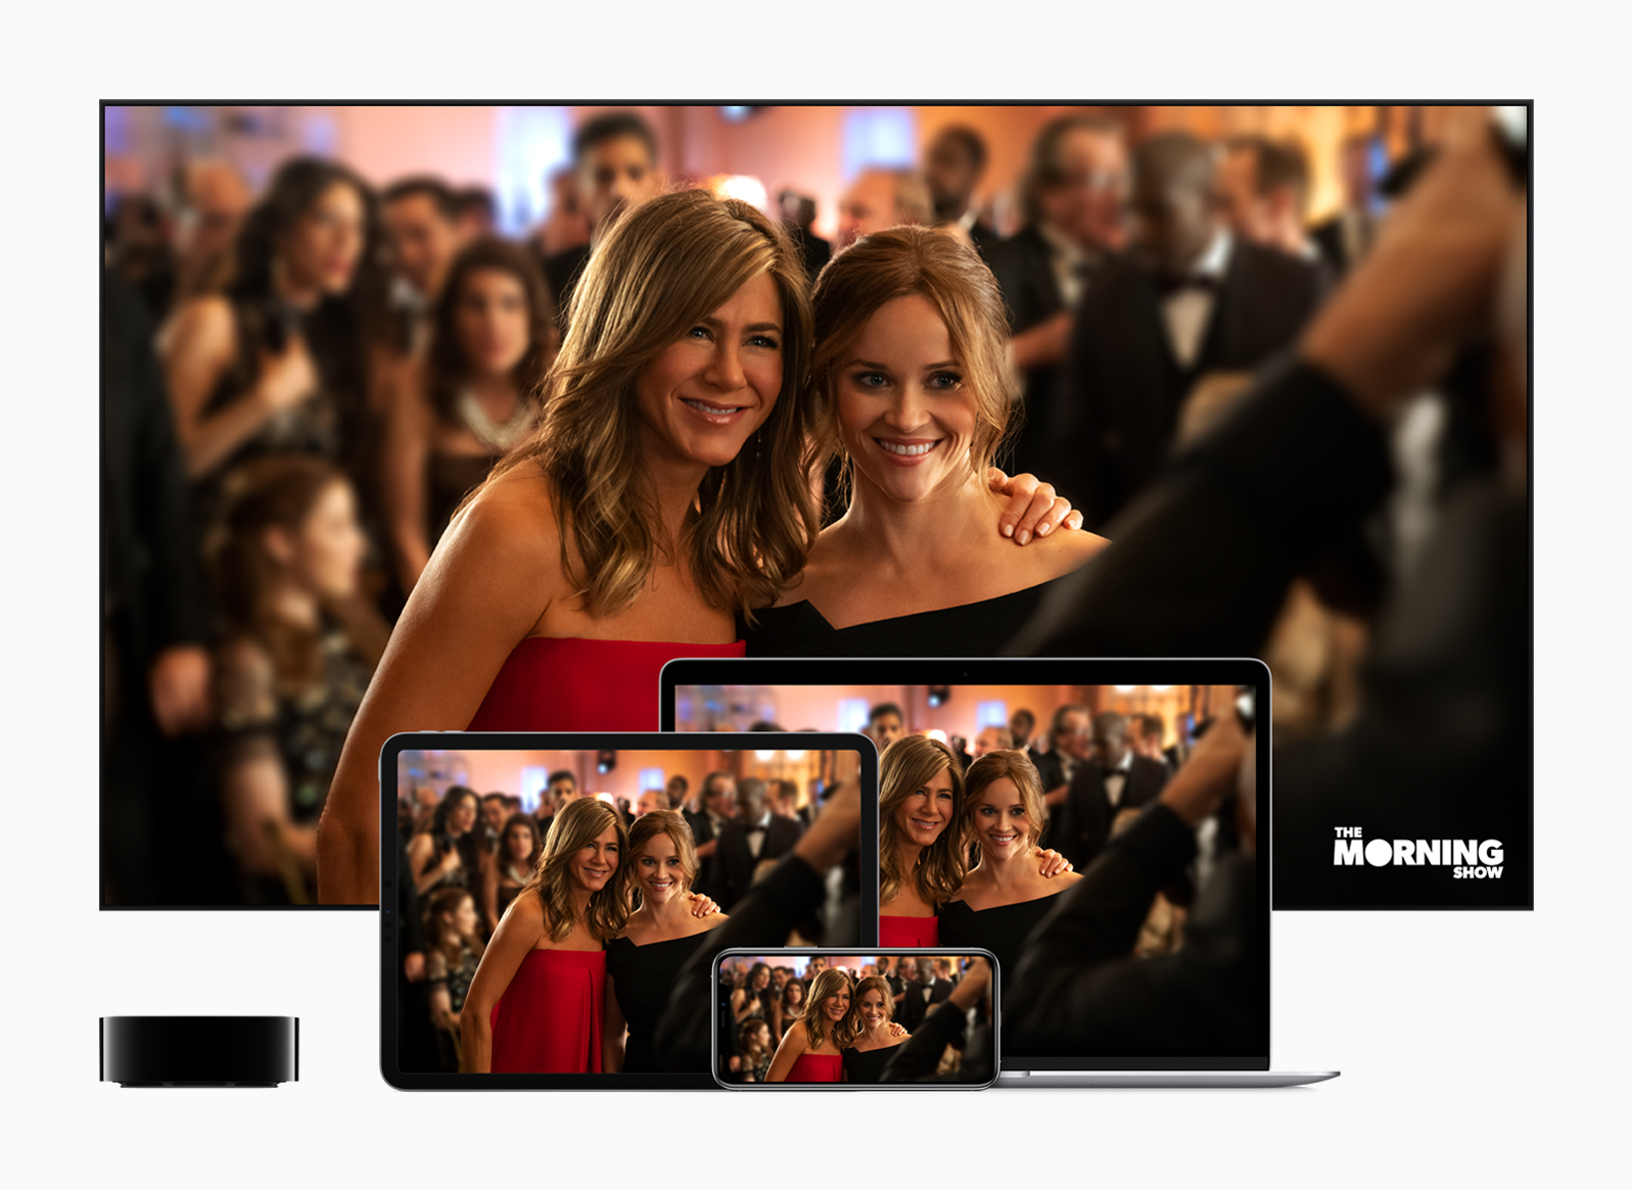 Apple TV+ will be available on the Apple TV app in over 100 countries and regions on November 1.